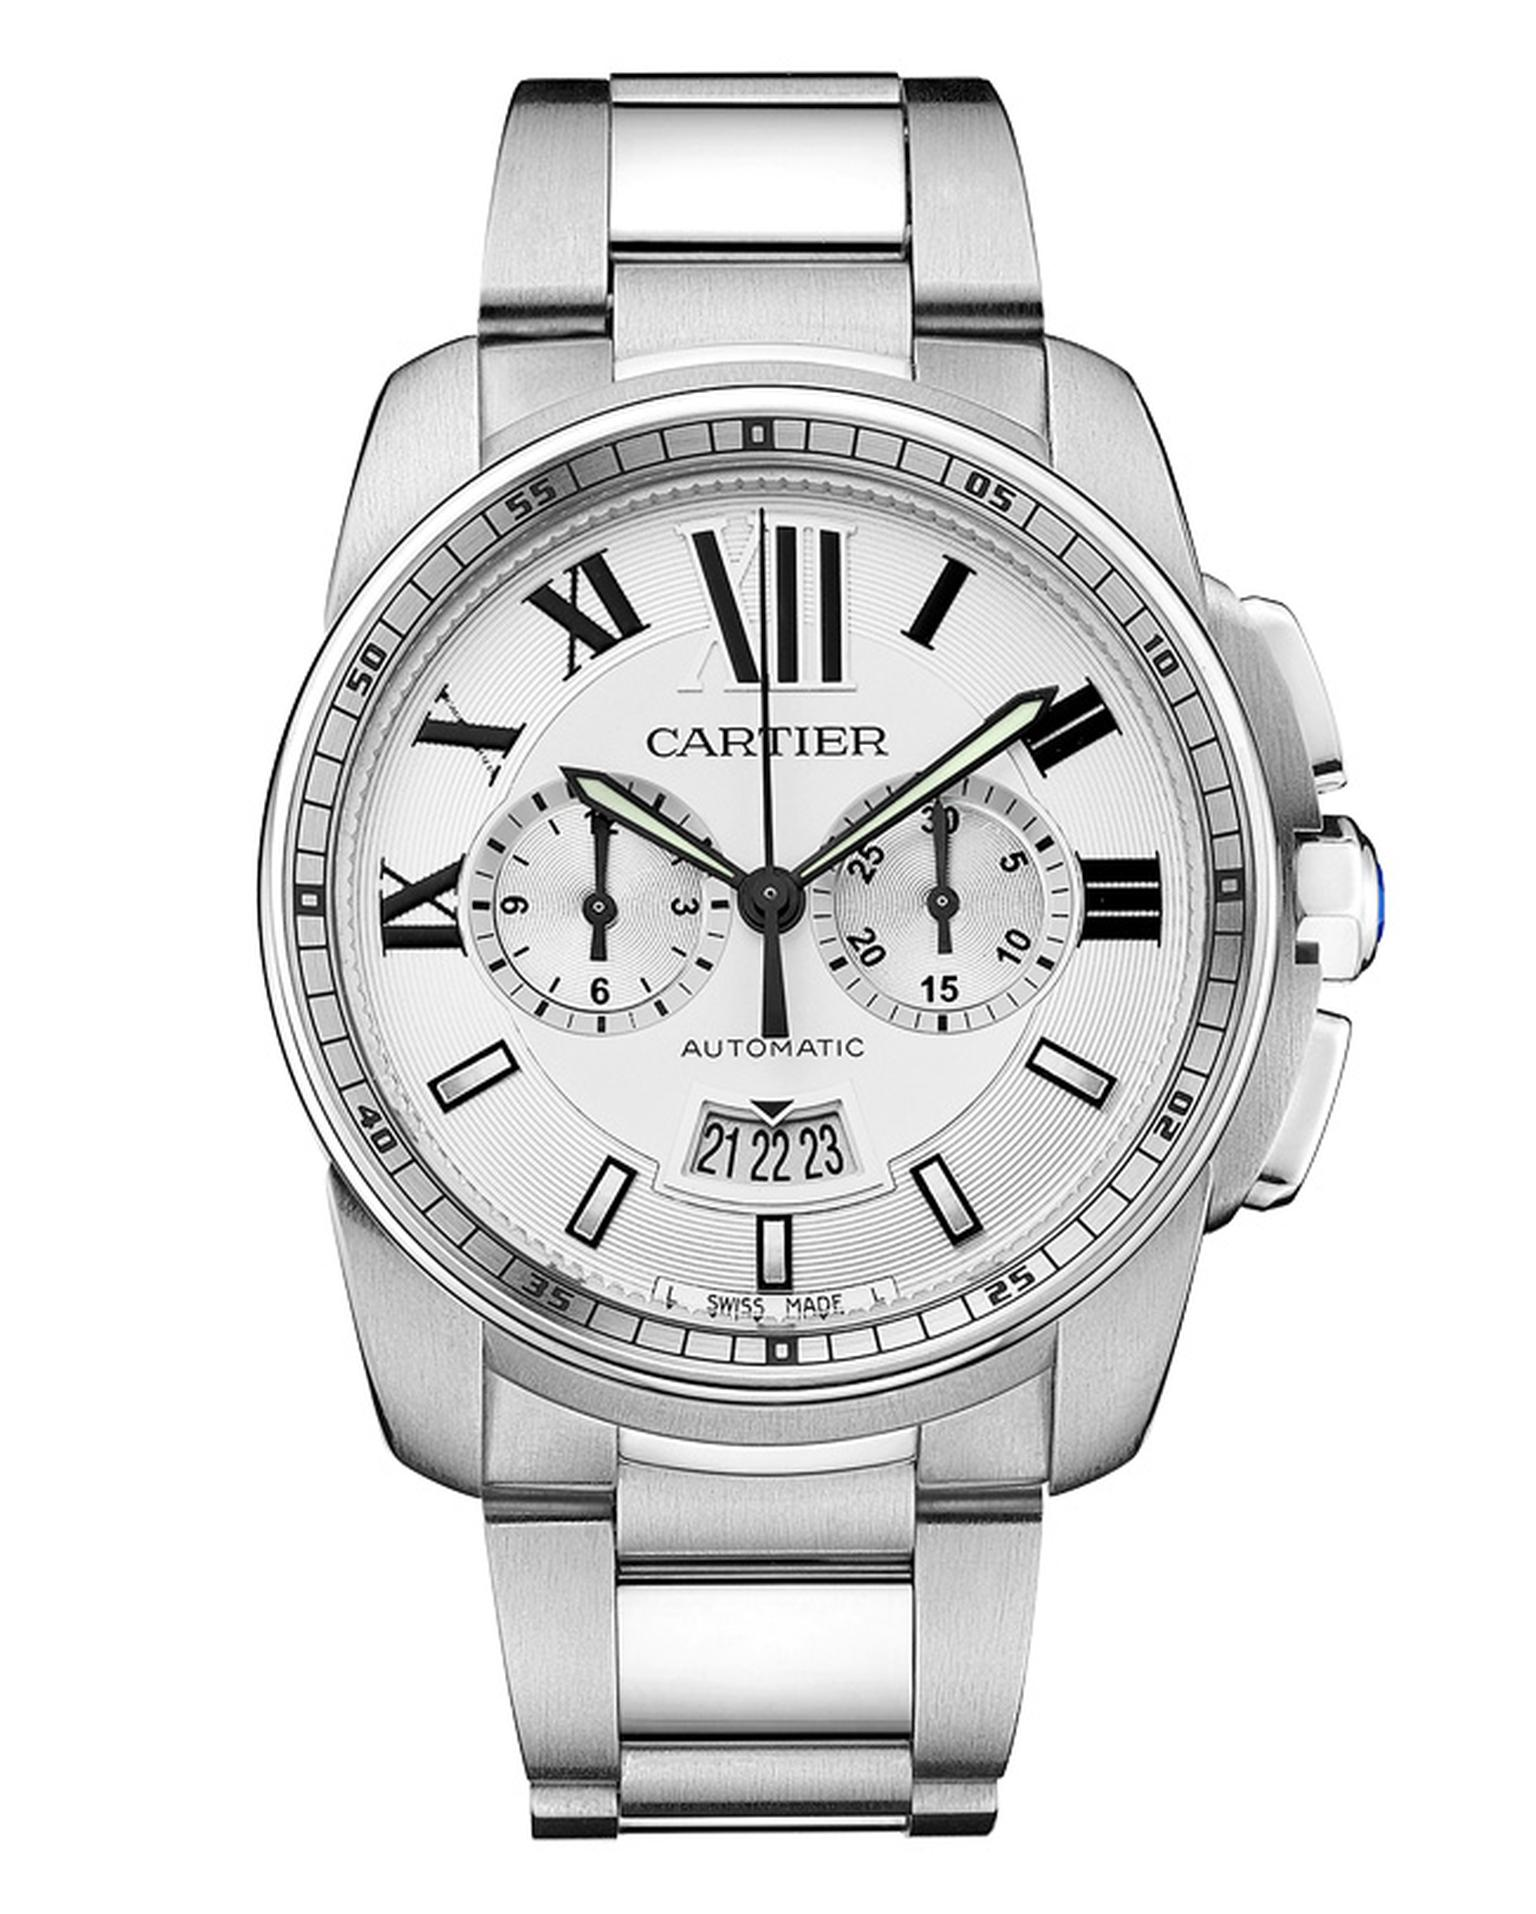 Calibre de Cartier Chronograph watch_20130418_Main